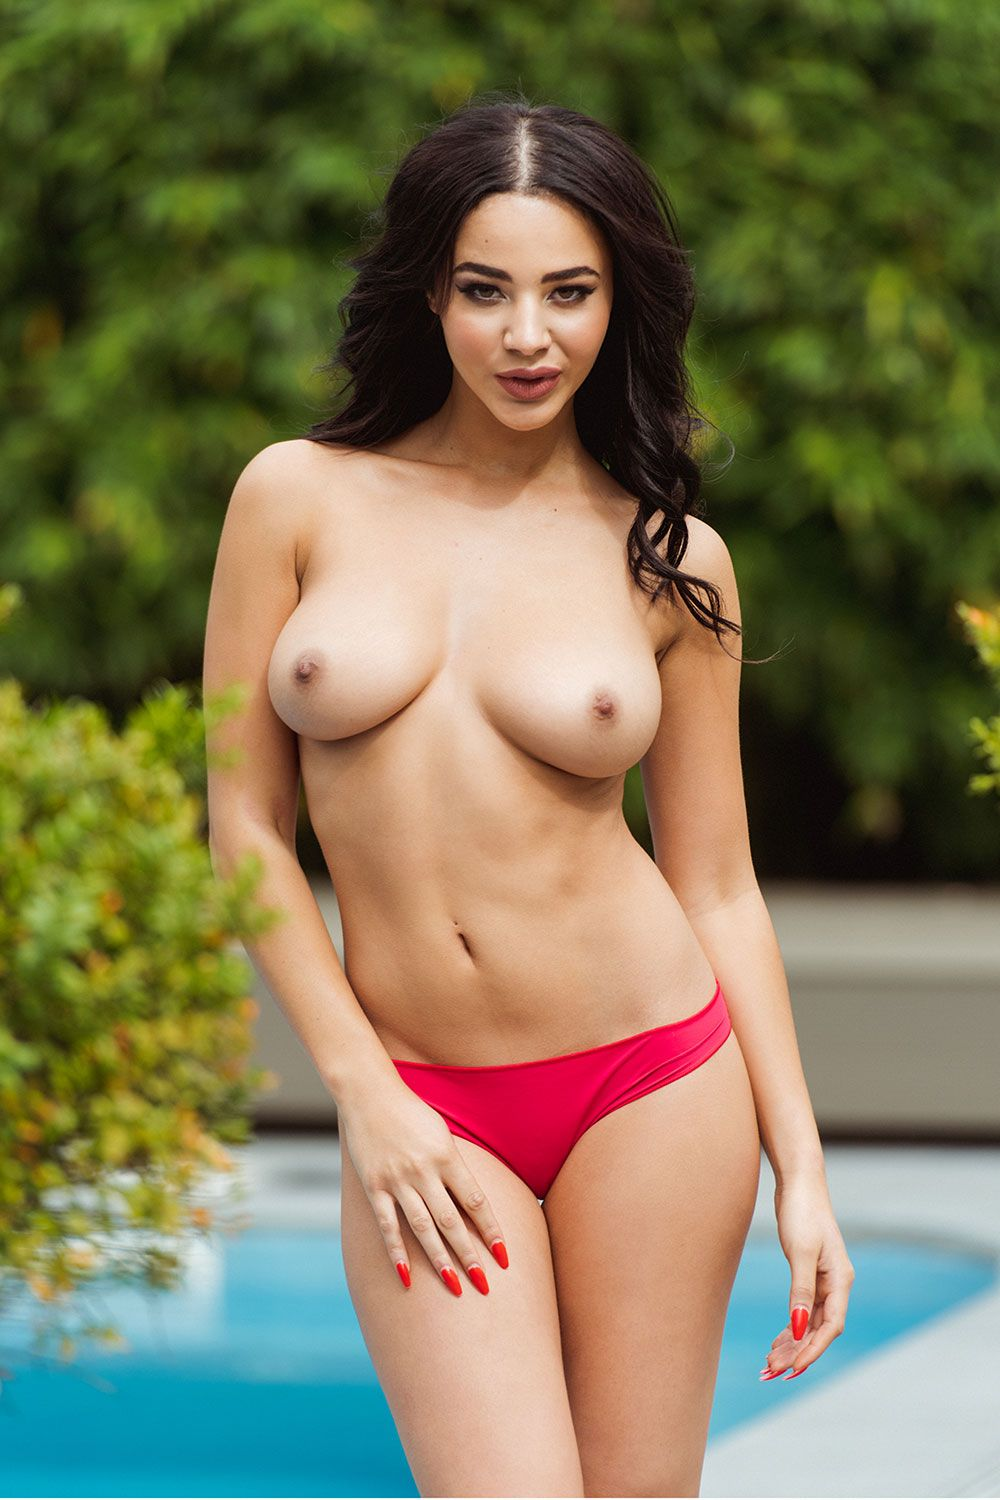 Topless Photos Of Courtni...